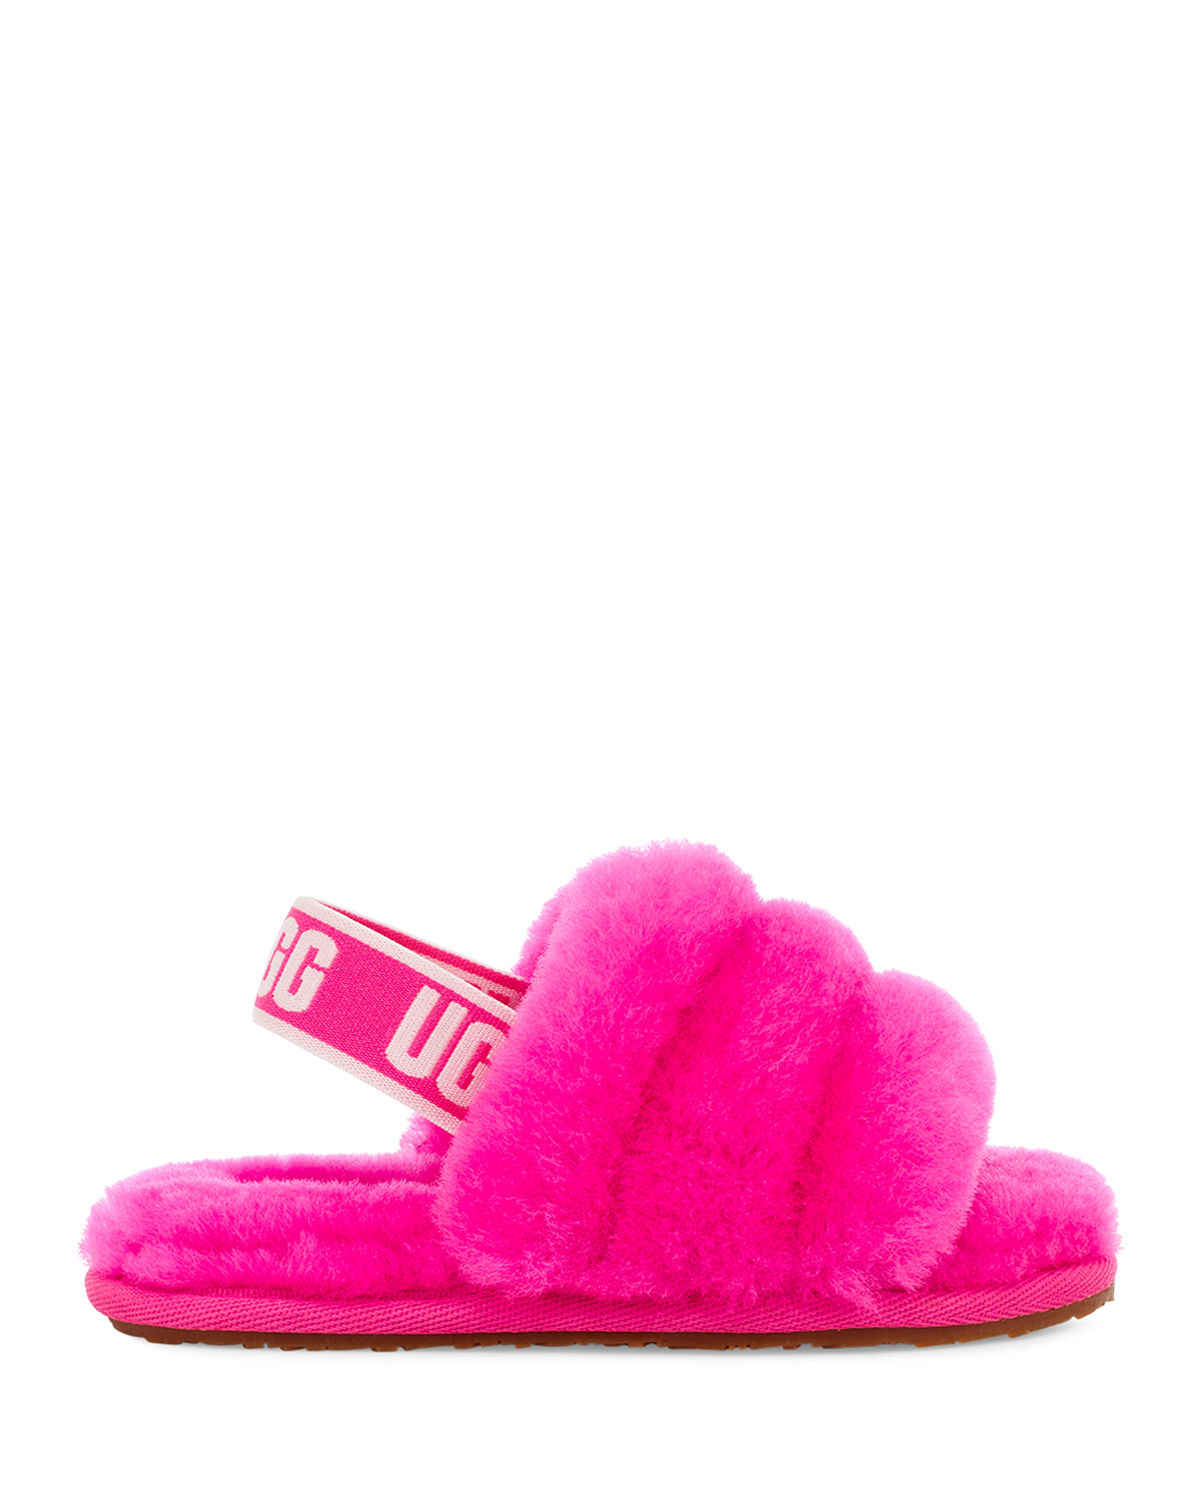 Ugg FLUFF YEAH SHEARLING SLIDES, BABY/TODDLERS